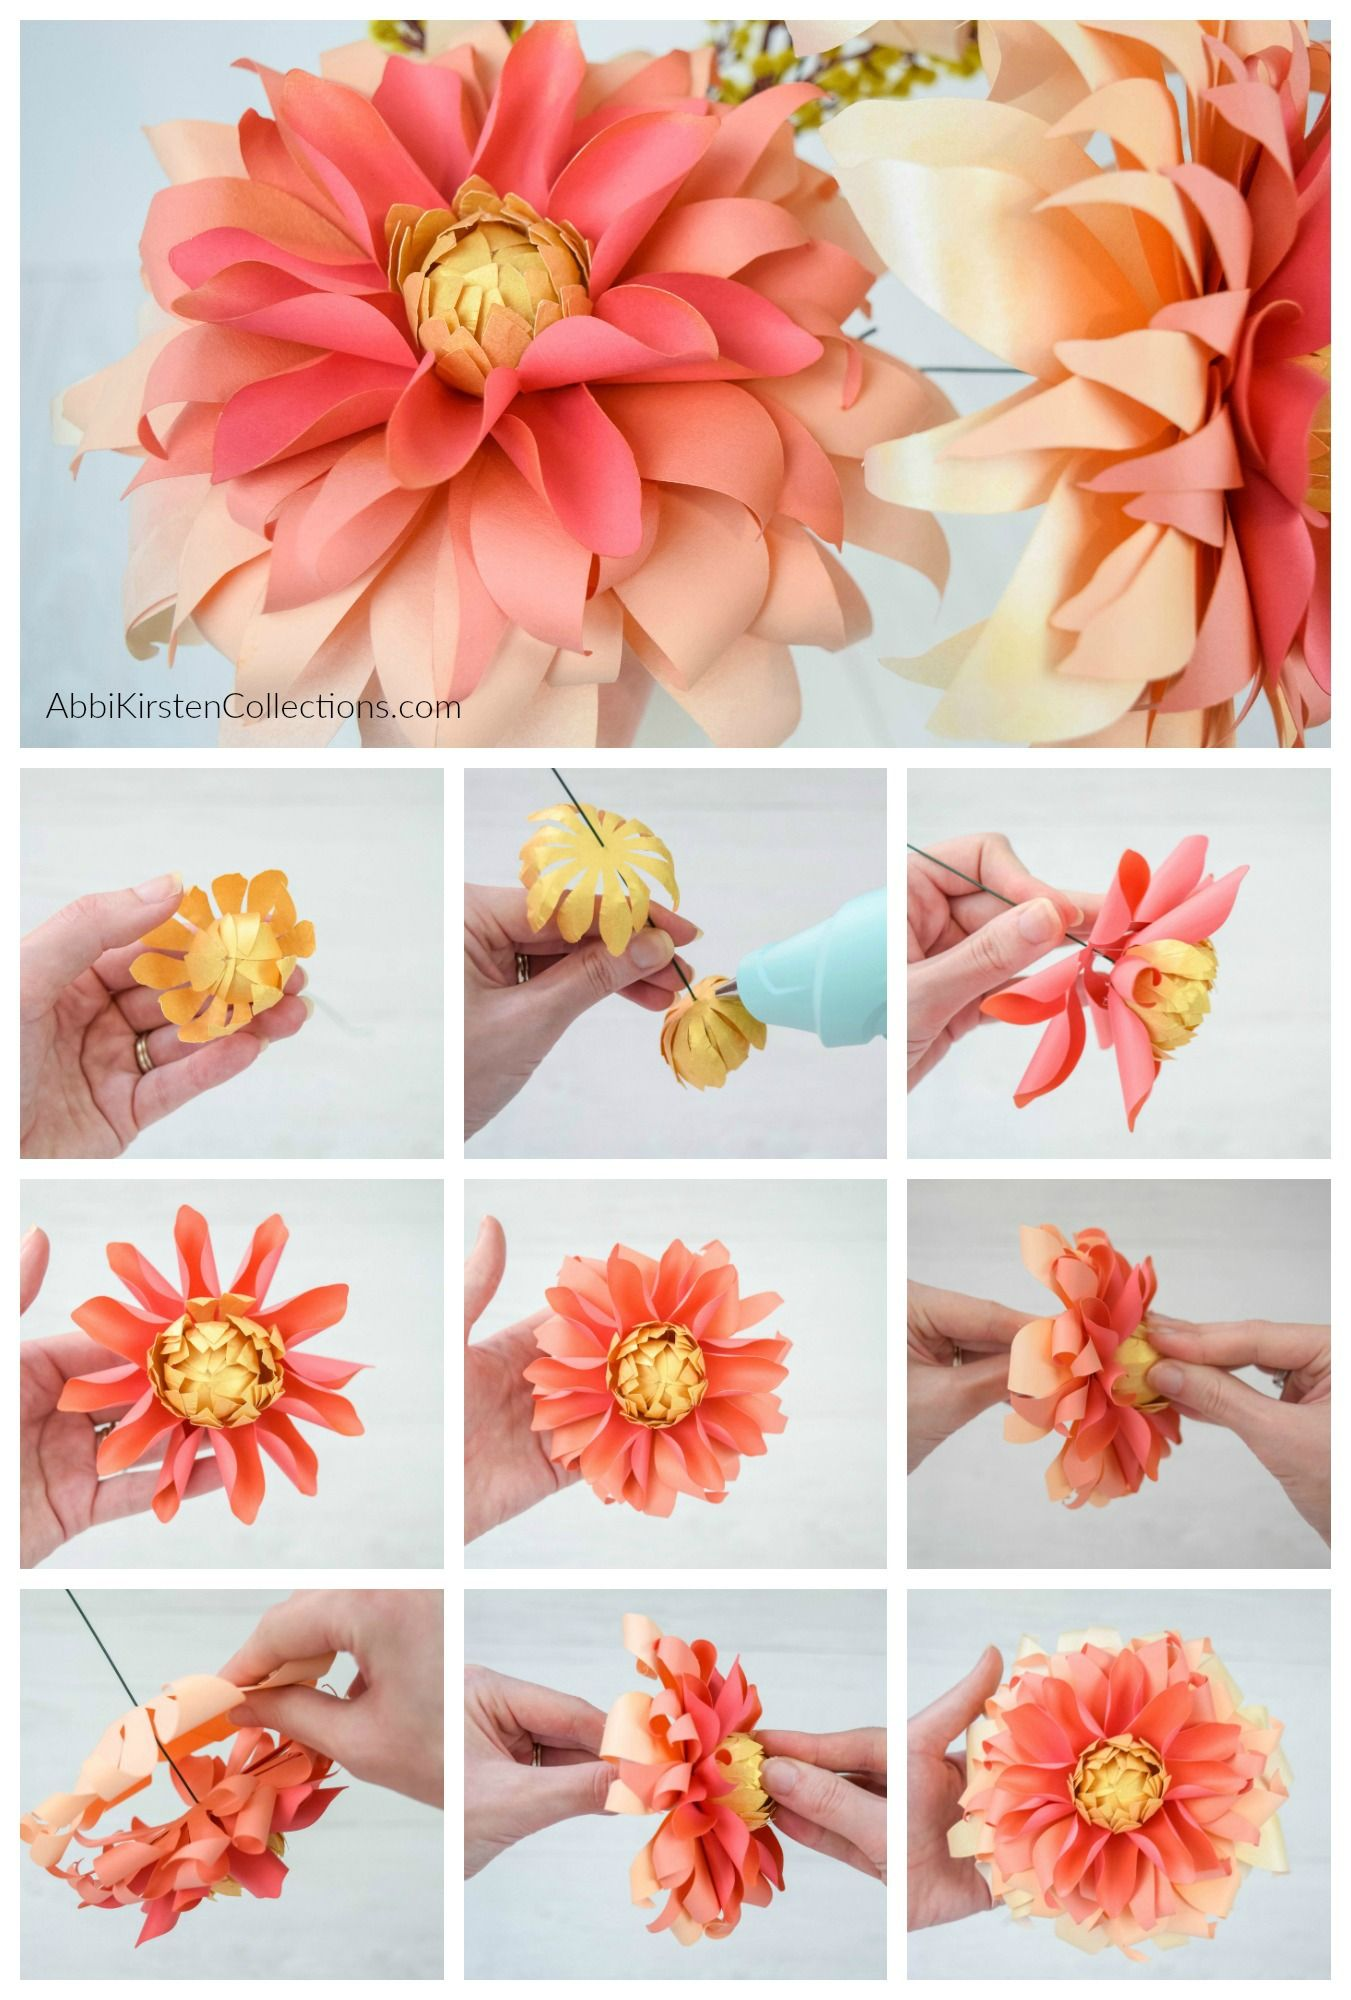 Autumn Sunburst Dahlia Paper Flower Template And Tutorial Flower Template Paper Flower Template Paper Flowers